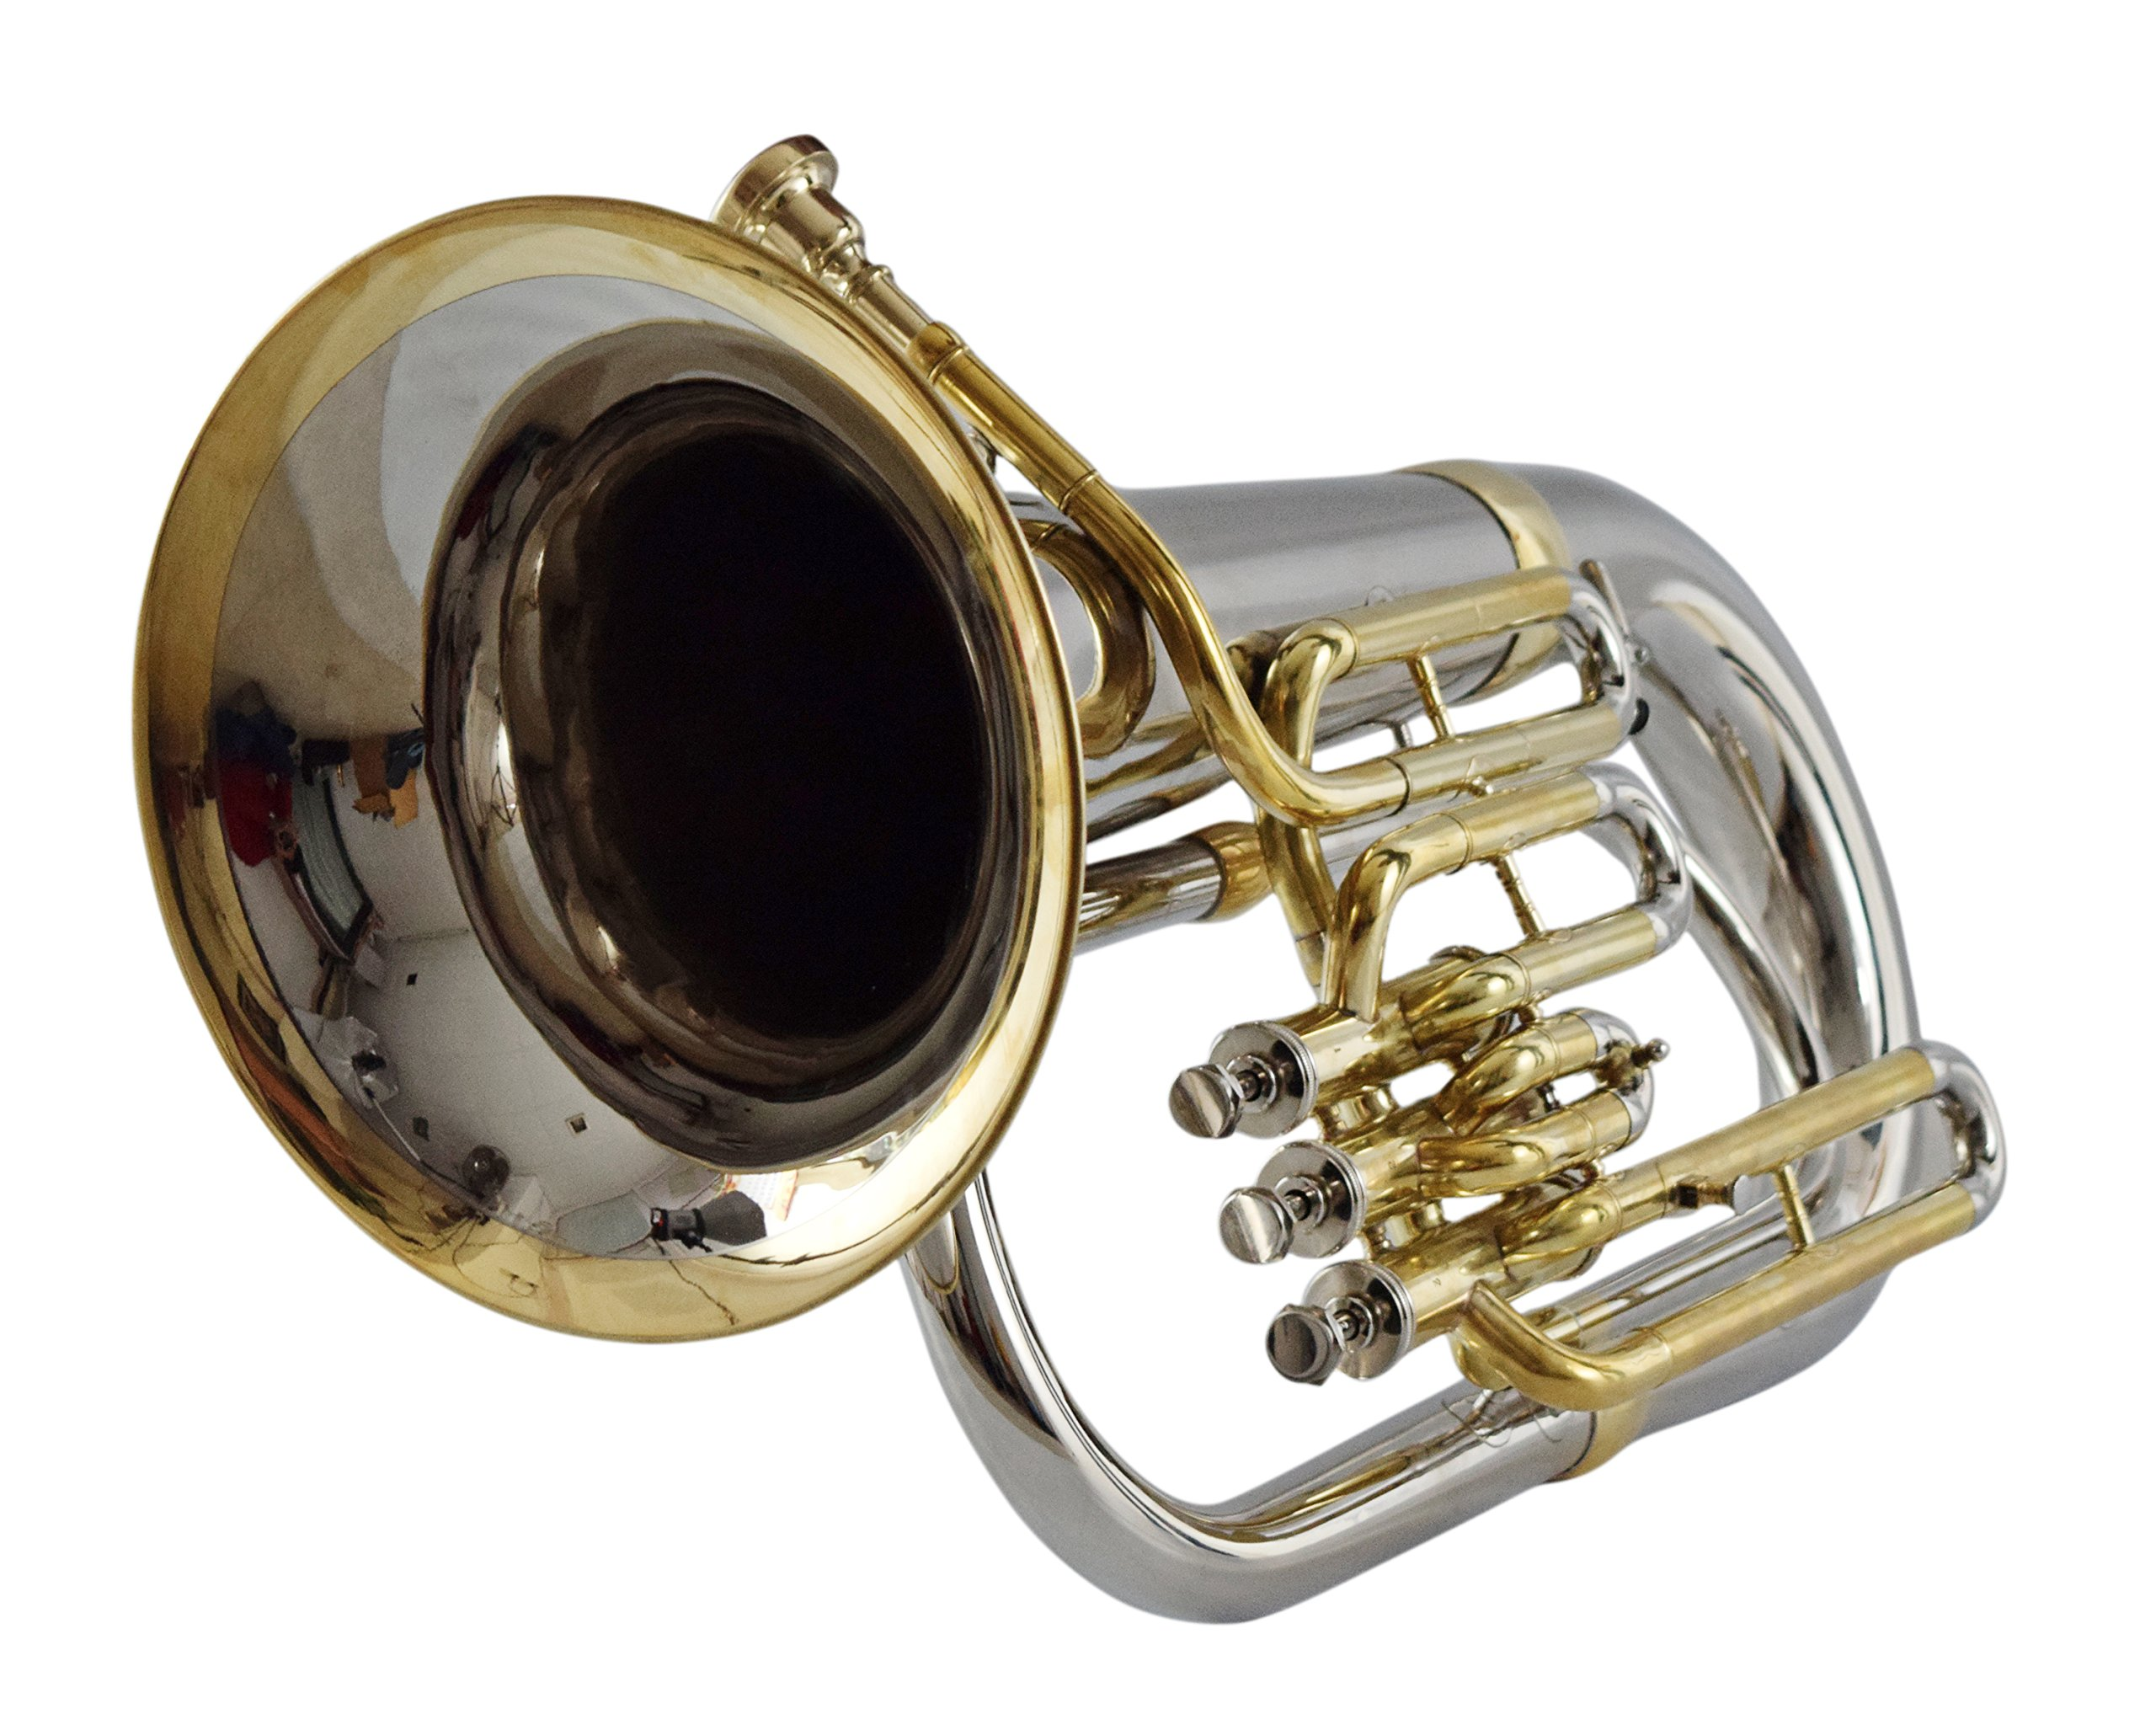 NASIR ALI AWESOME EUPHONIUM Bb PITCH @10% DISC. NICKEL+BRASS WITH FREE Bag+MP+SHIP